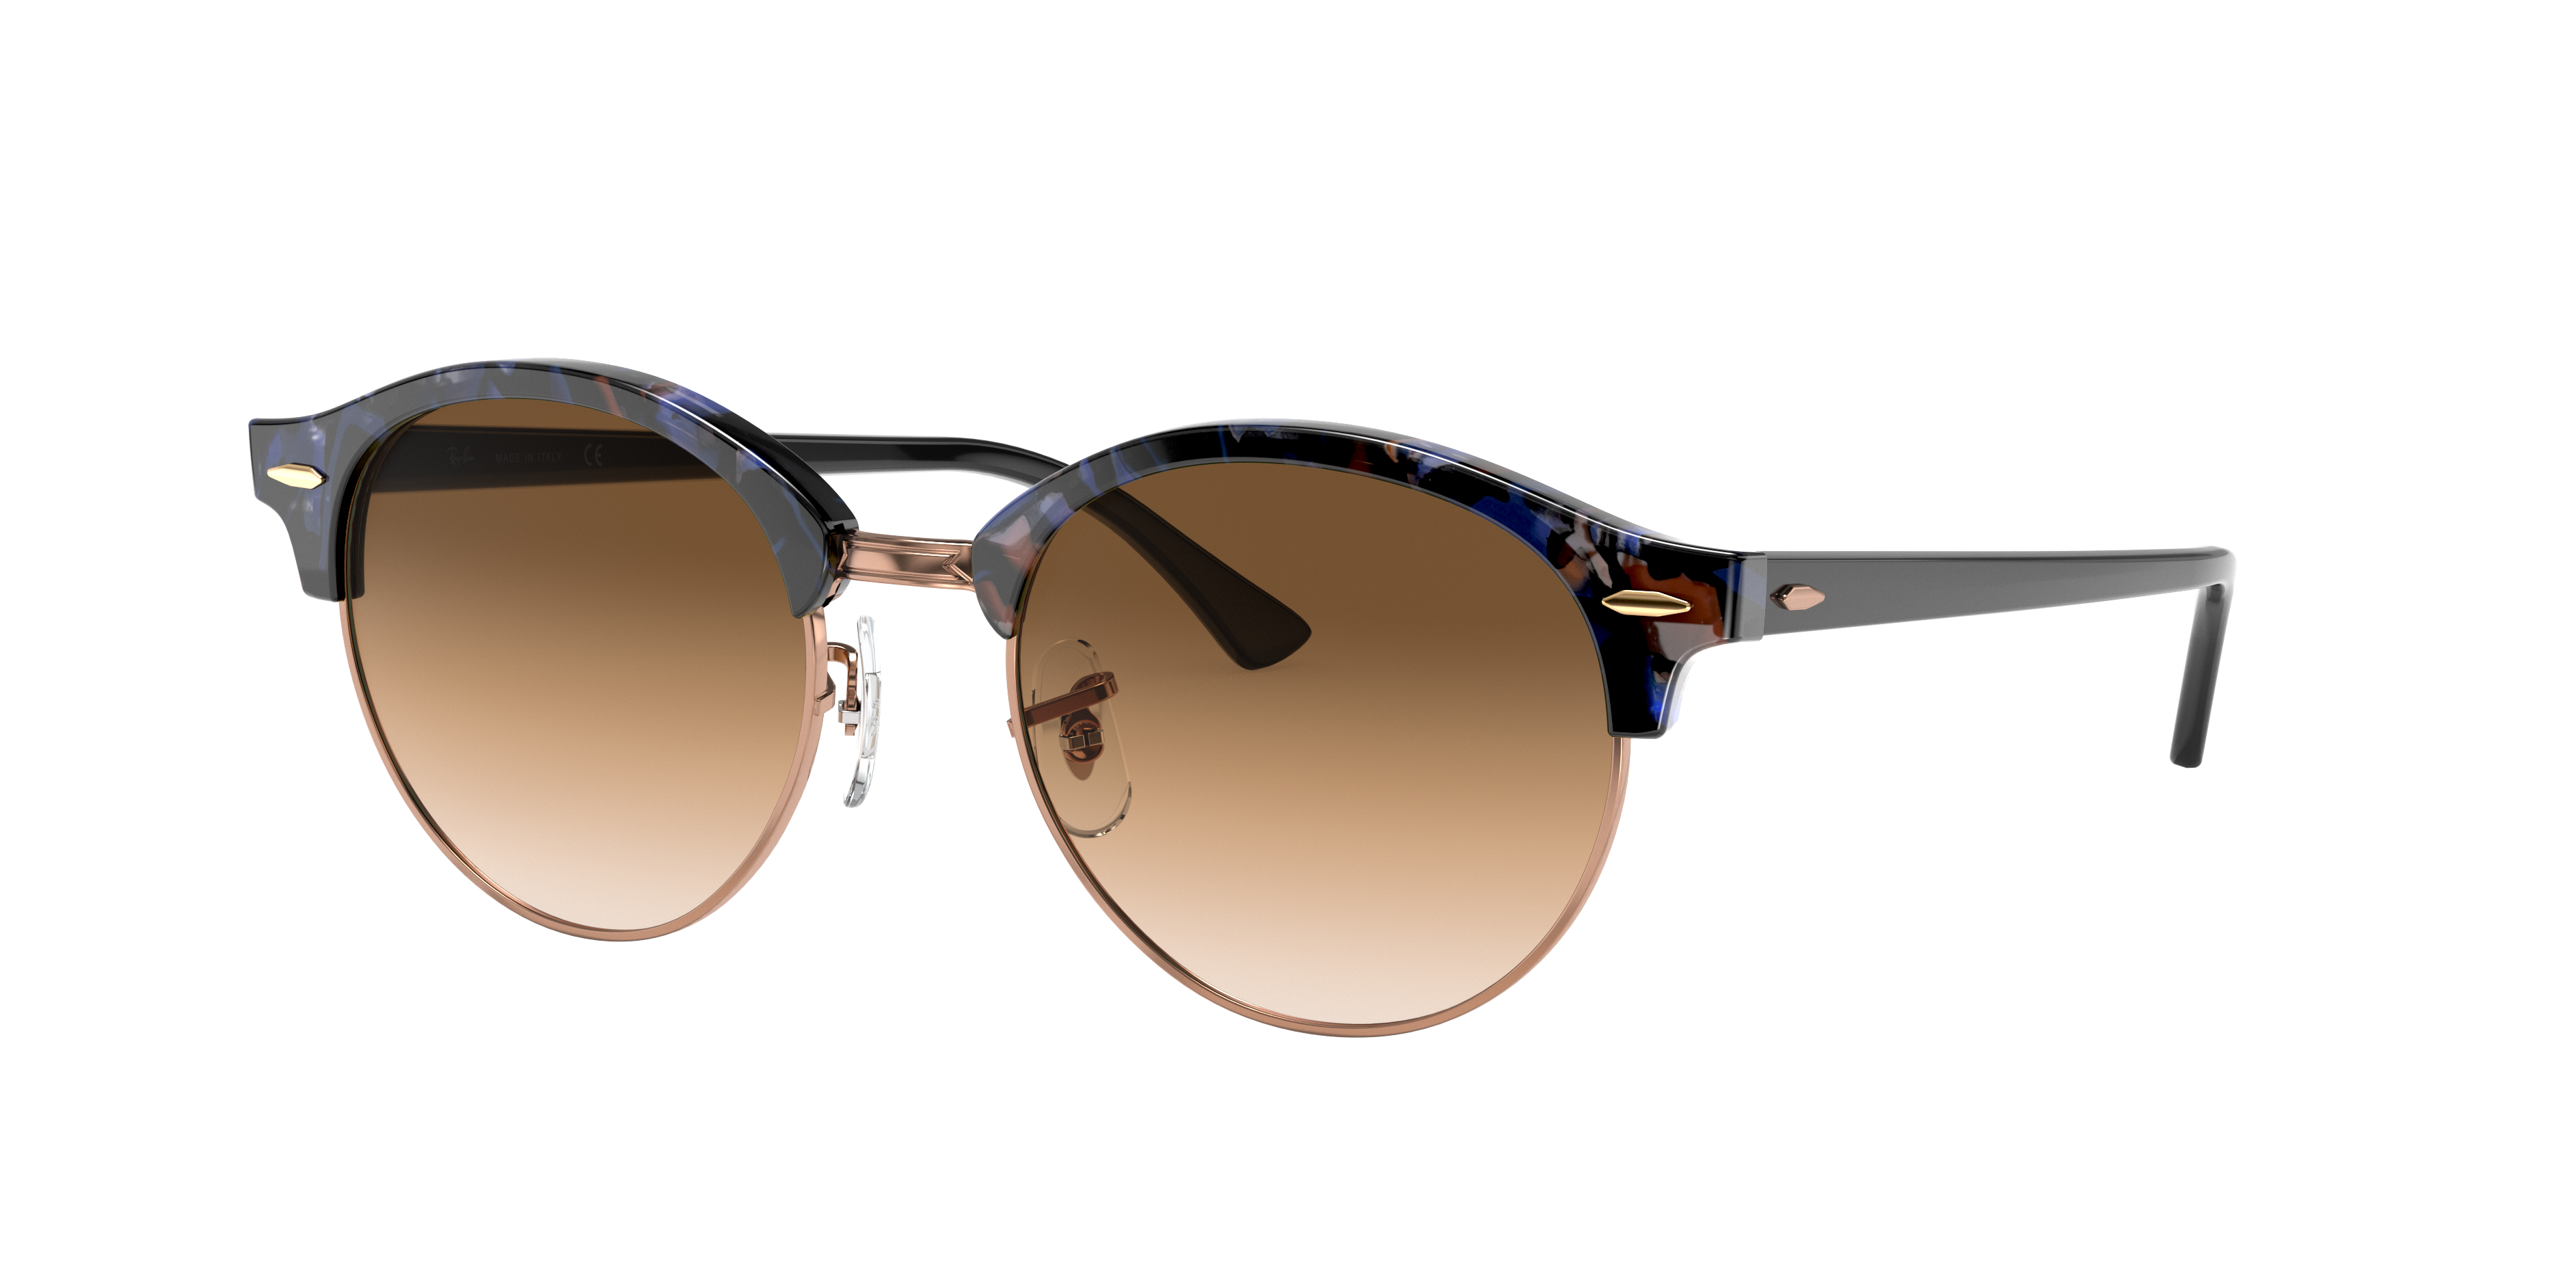 Ray-Ban Clubround Fleck Black, Brown Lenses - RB4246